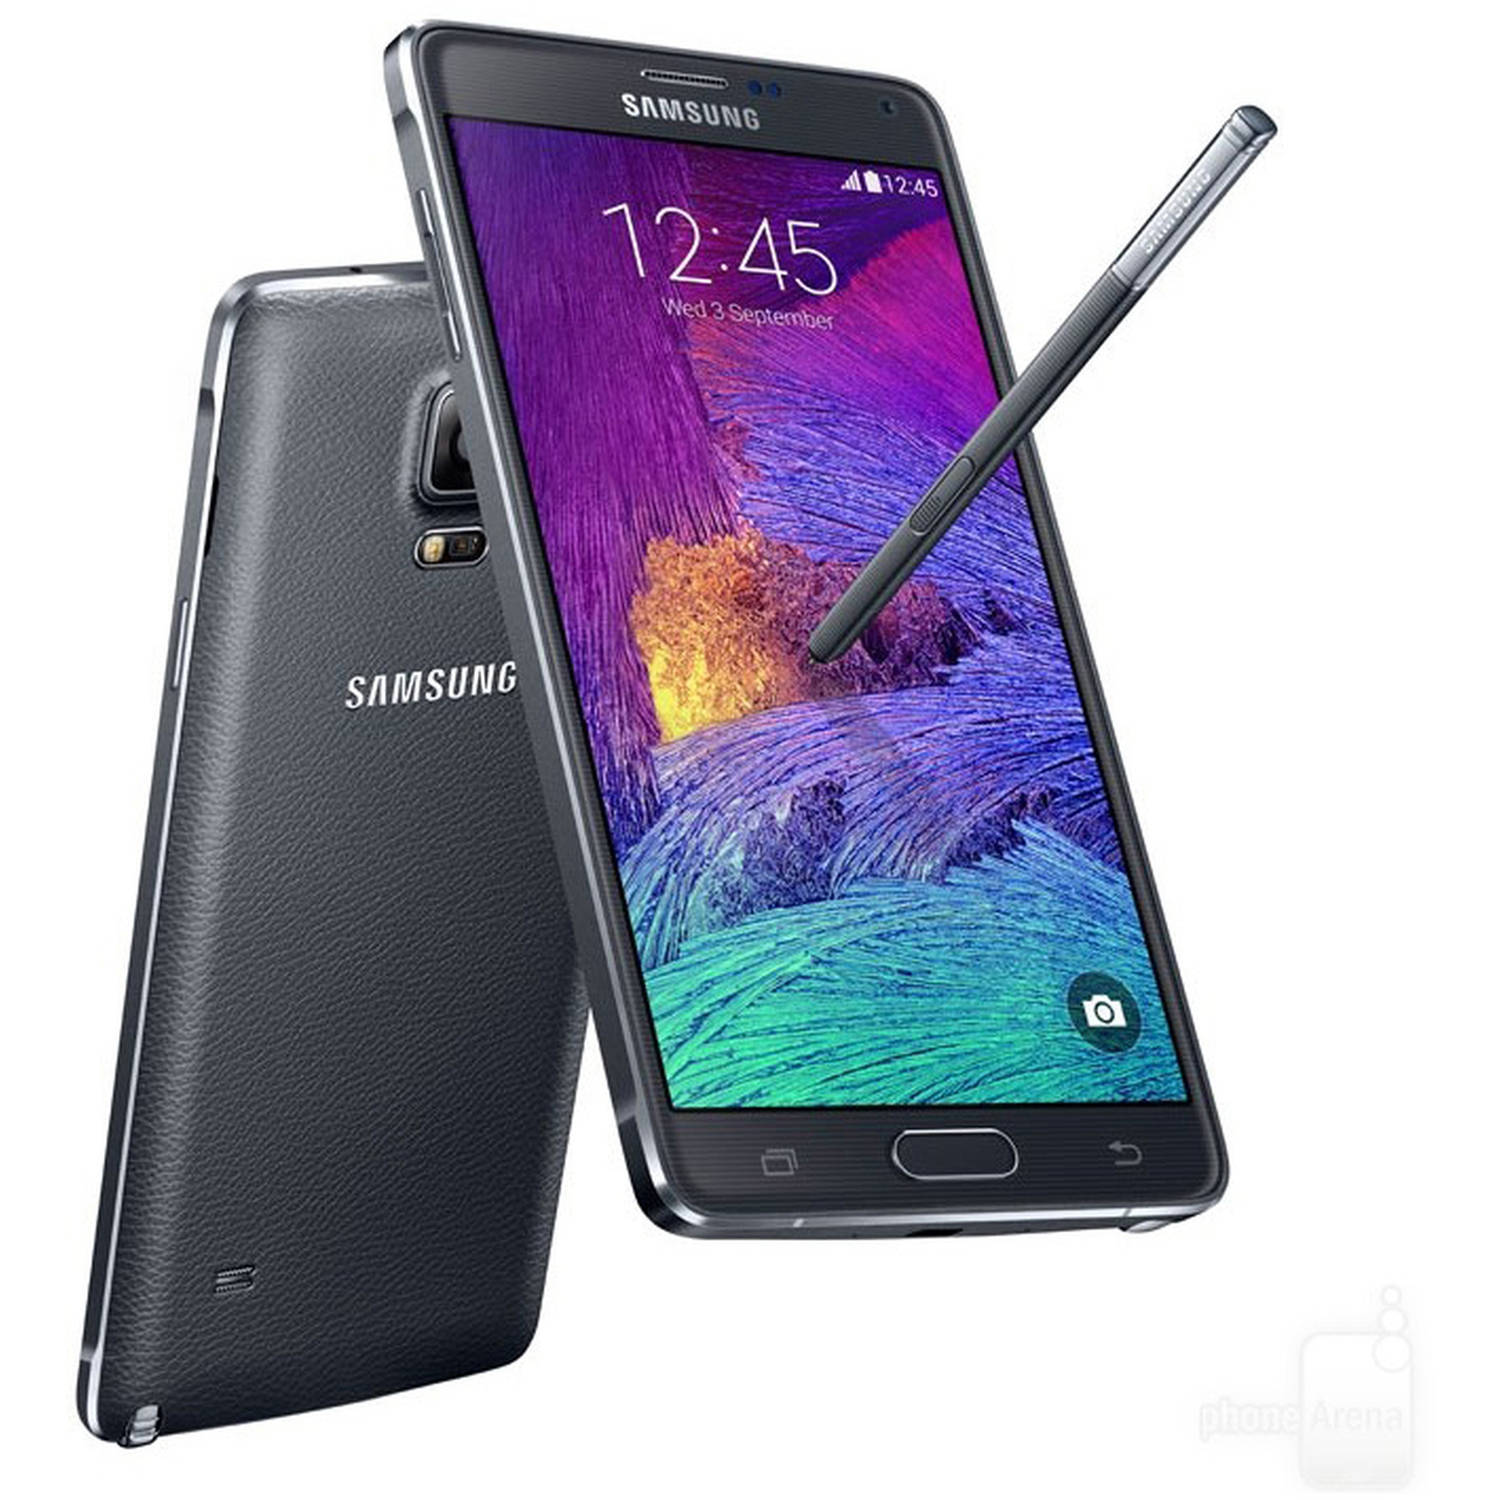 Refurbished Samsung Galaxy Note 4 32GB SM-N910V Smartphone Verizon Wireless